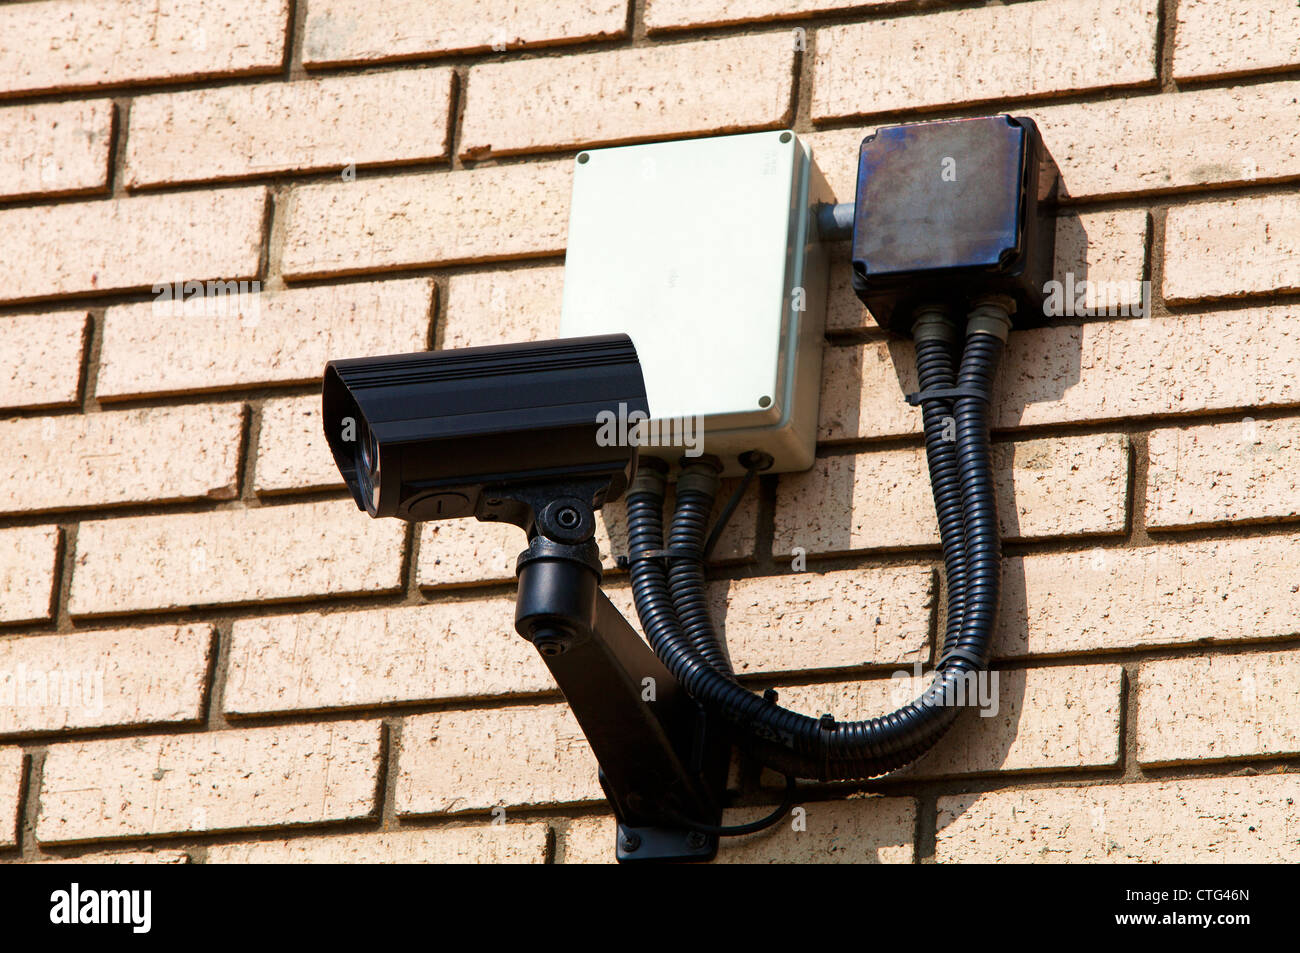 Wall mounted latest generation closed circuit tv security camera - Stock Image